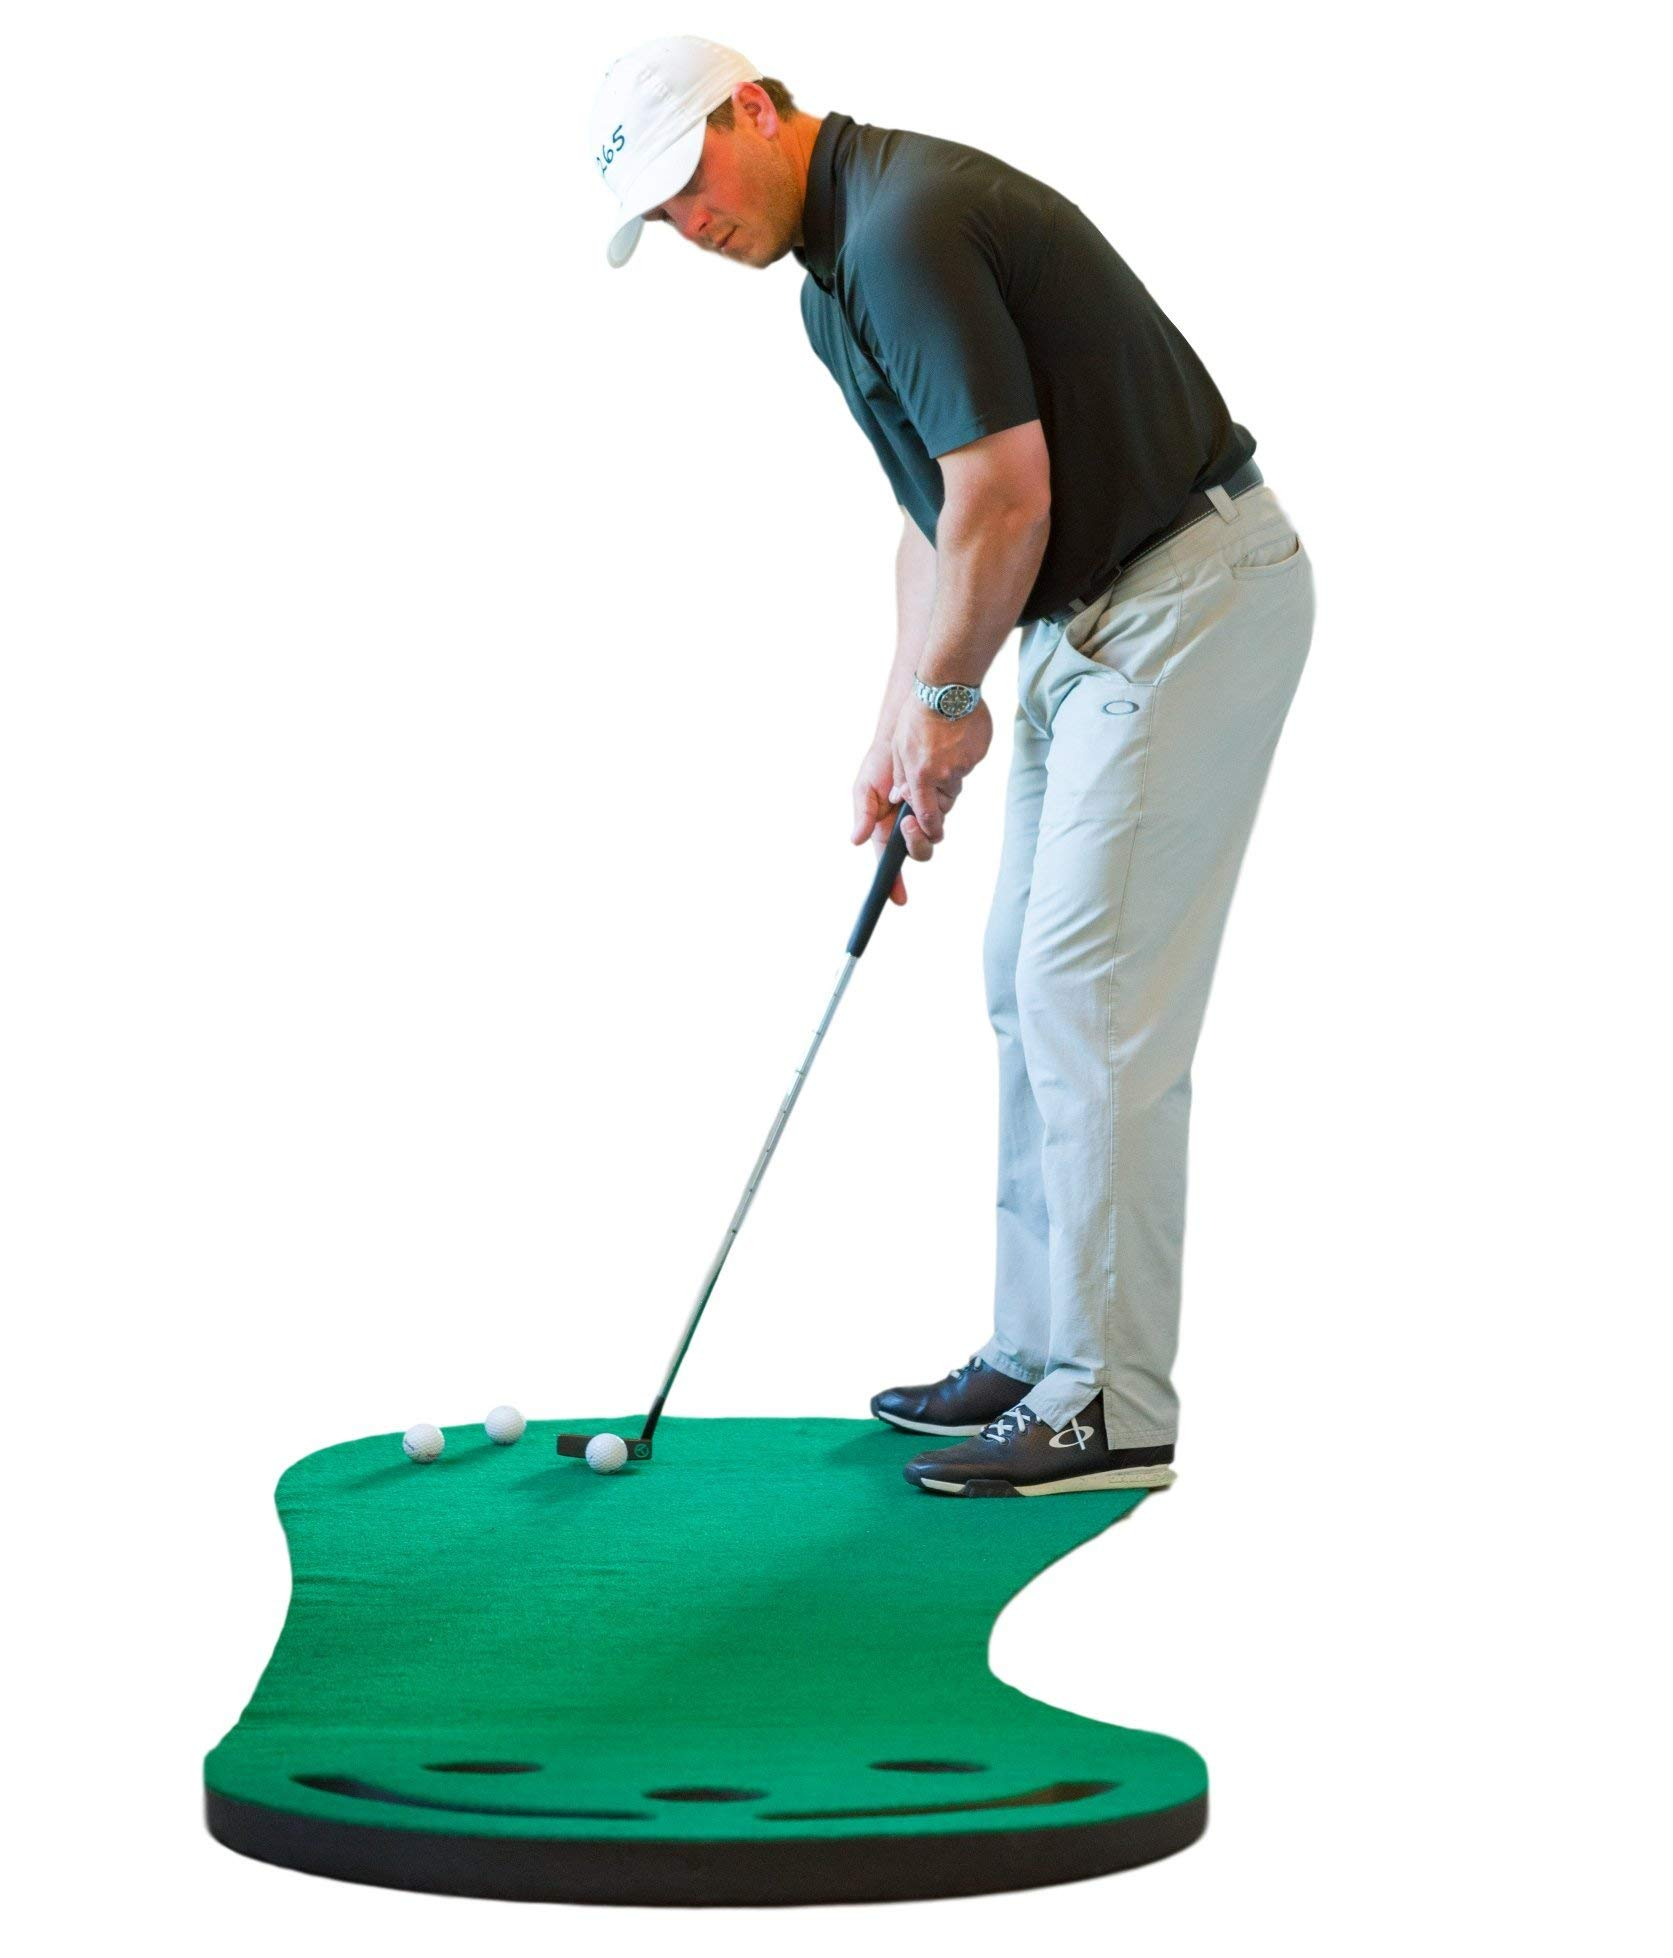 SHAUN WEBB Signature Putting Green Indoor Mat 9'x3' (Designed by PGA Pro & Golf Digest's Top Teacher) Improve Your Putting Stroke and Lower Scores - Zero Bumps and Creases, Thick & Wide Surface by SHAUN WEBB